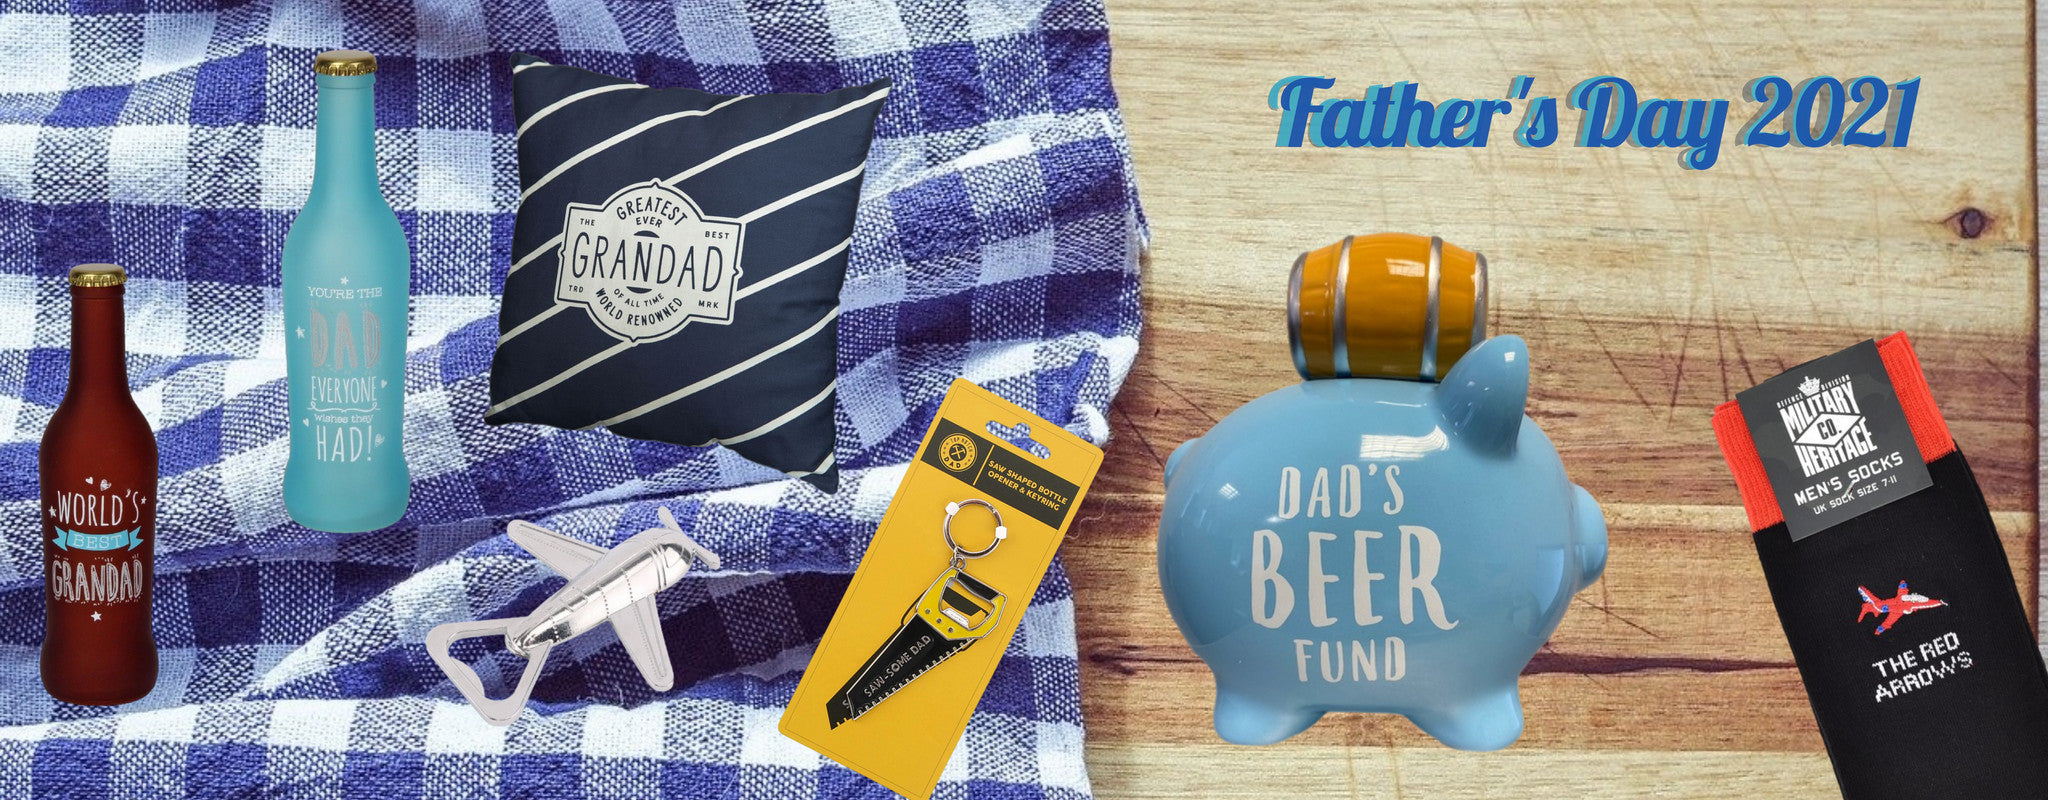 mollieandfred-fathersdaygifts